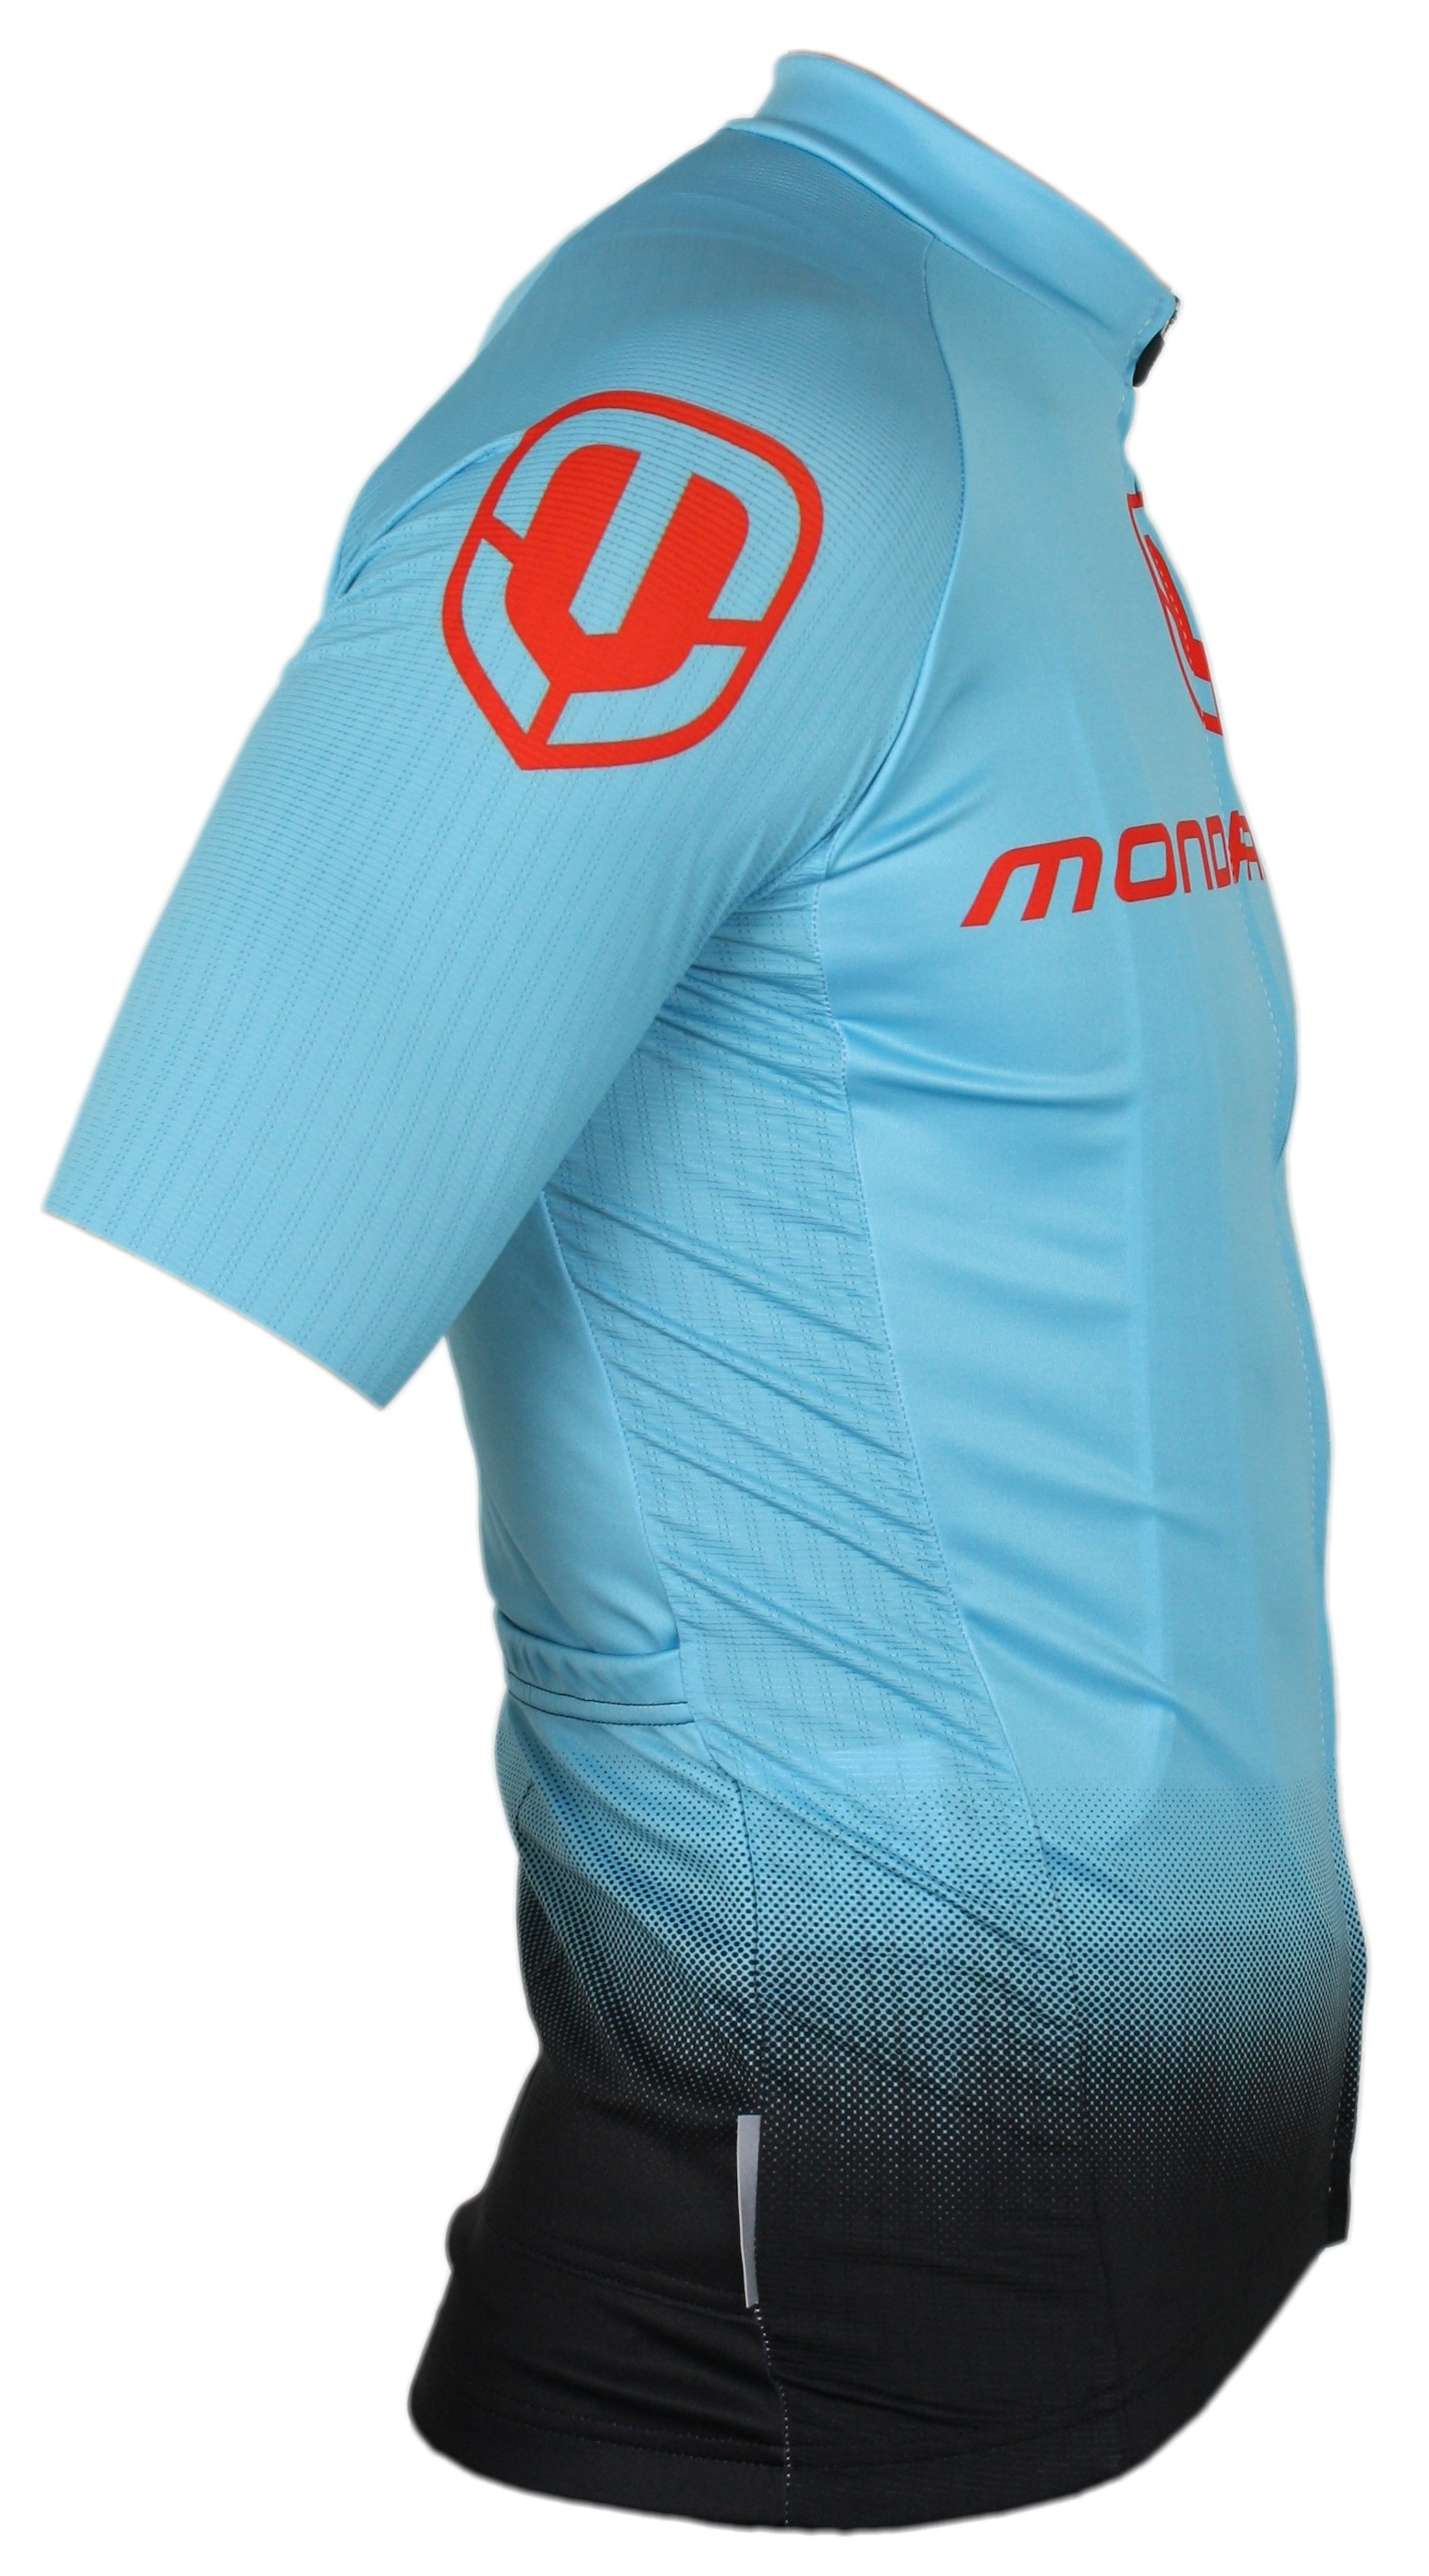 XC Jersey, blue/red